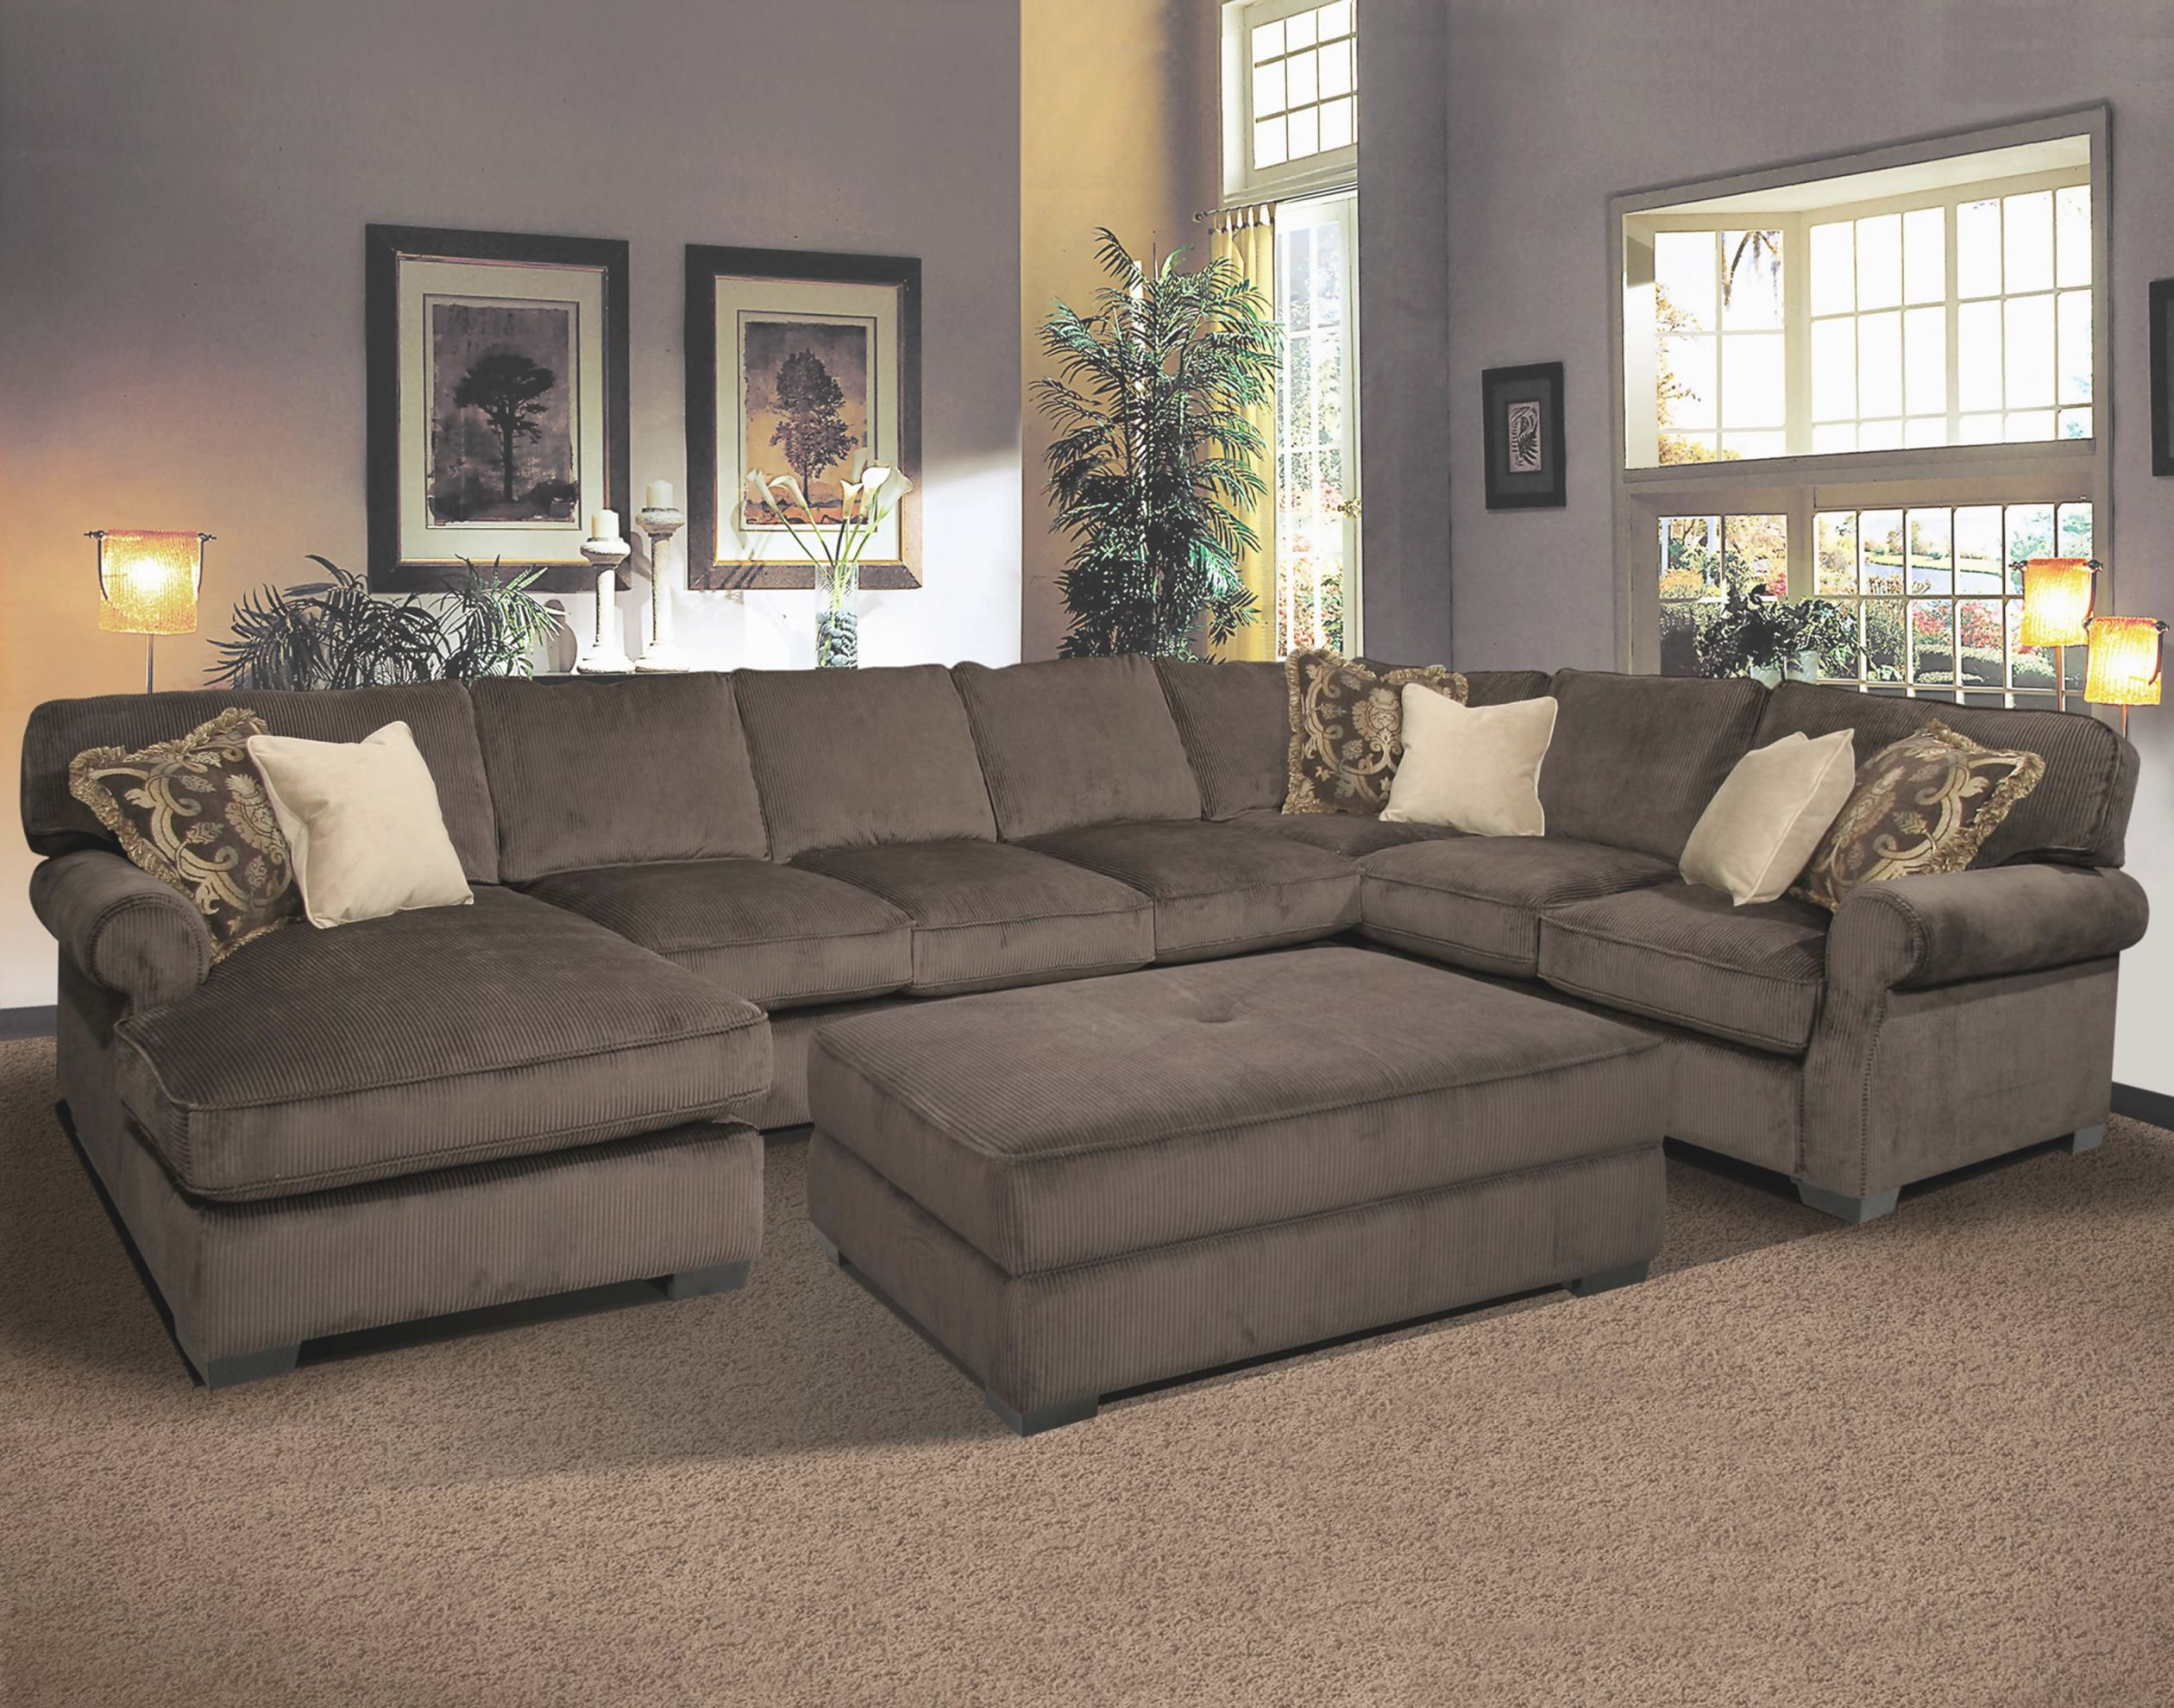 Grand Island Oversized Cocktail Ottoman For Sectional Sofa throughout Elegant Oversized Living Room Furniture